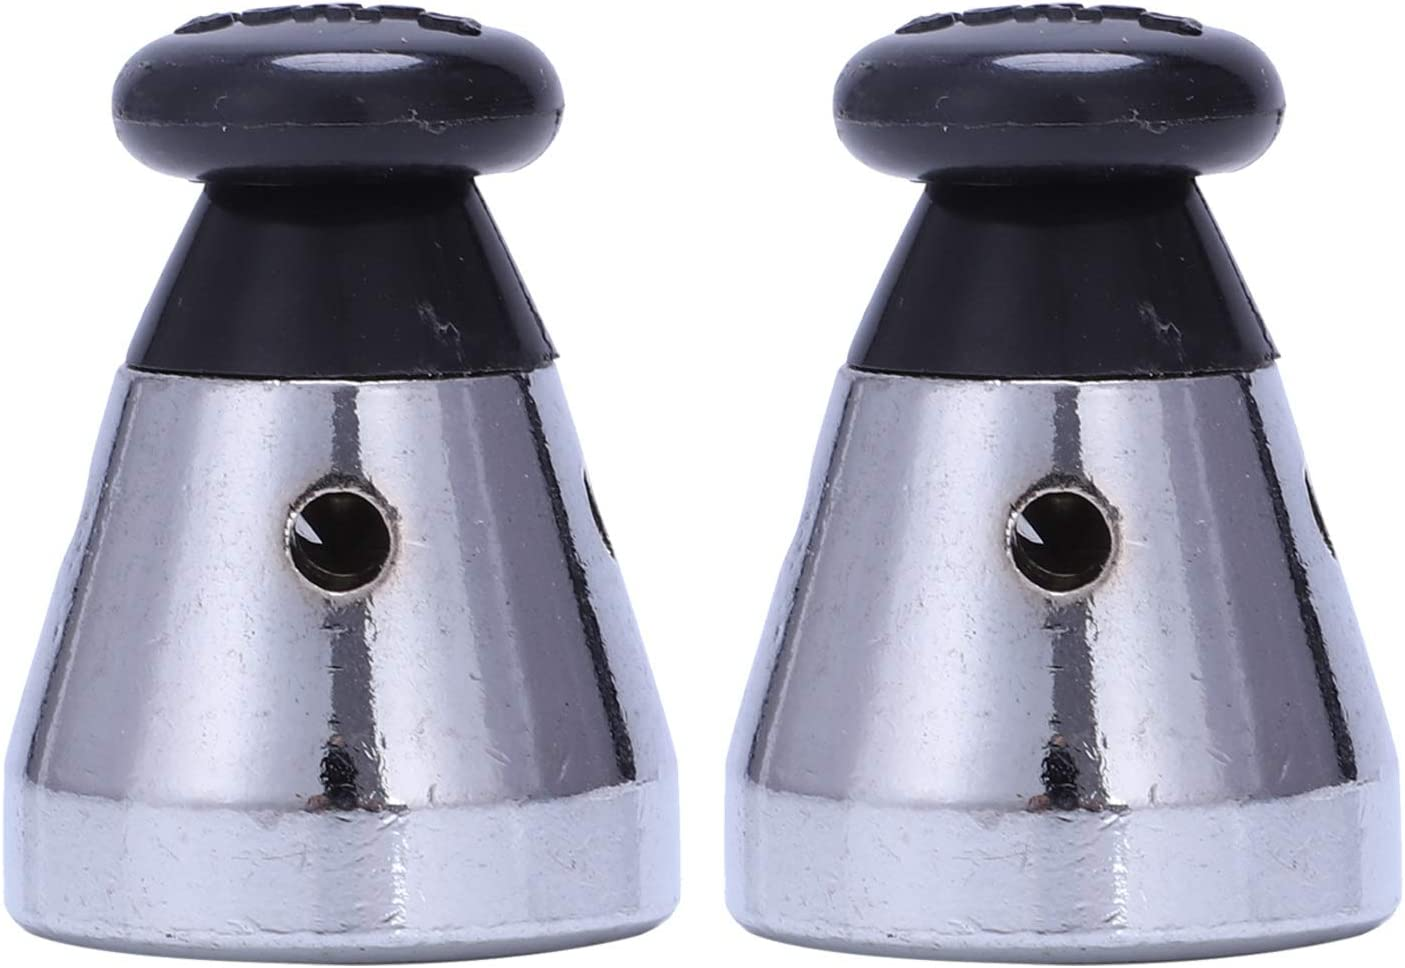 Andifany Pressure Cooker Relief Jigger Valve 1.5 Inch High 2Pcs Black